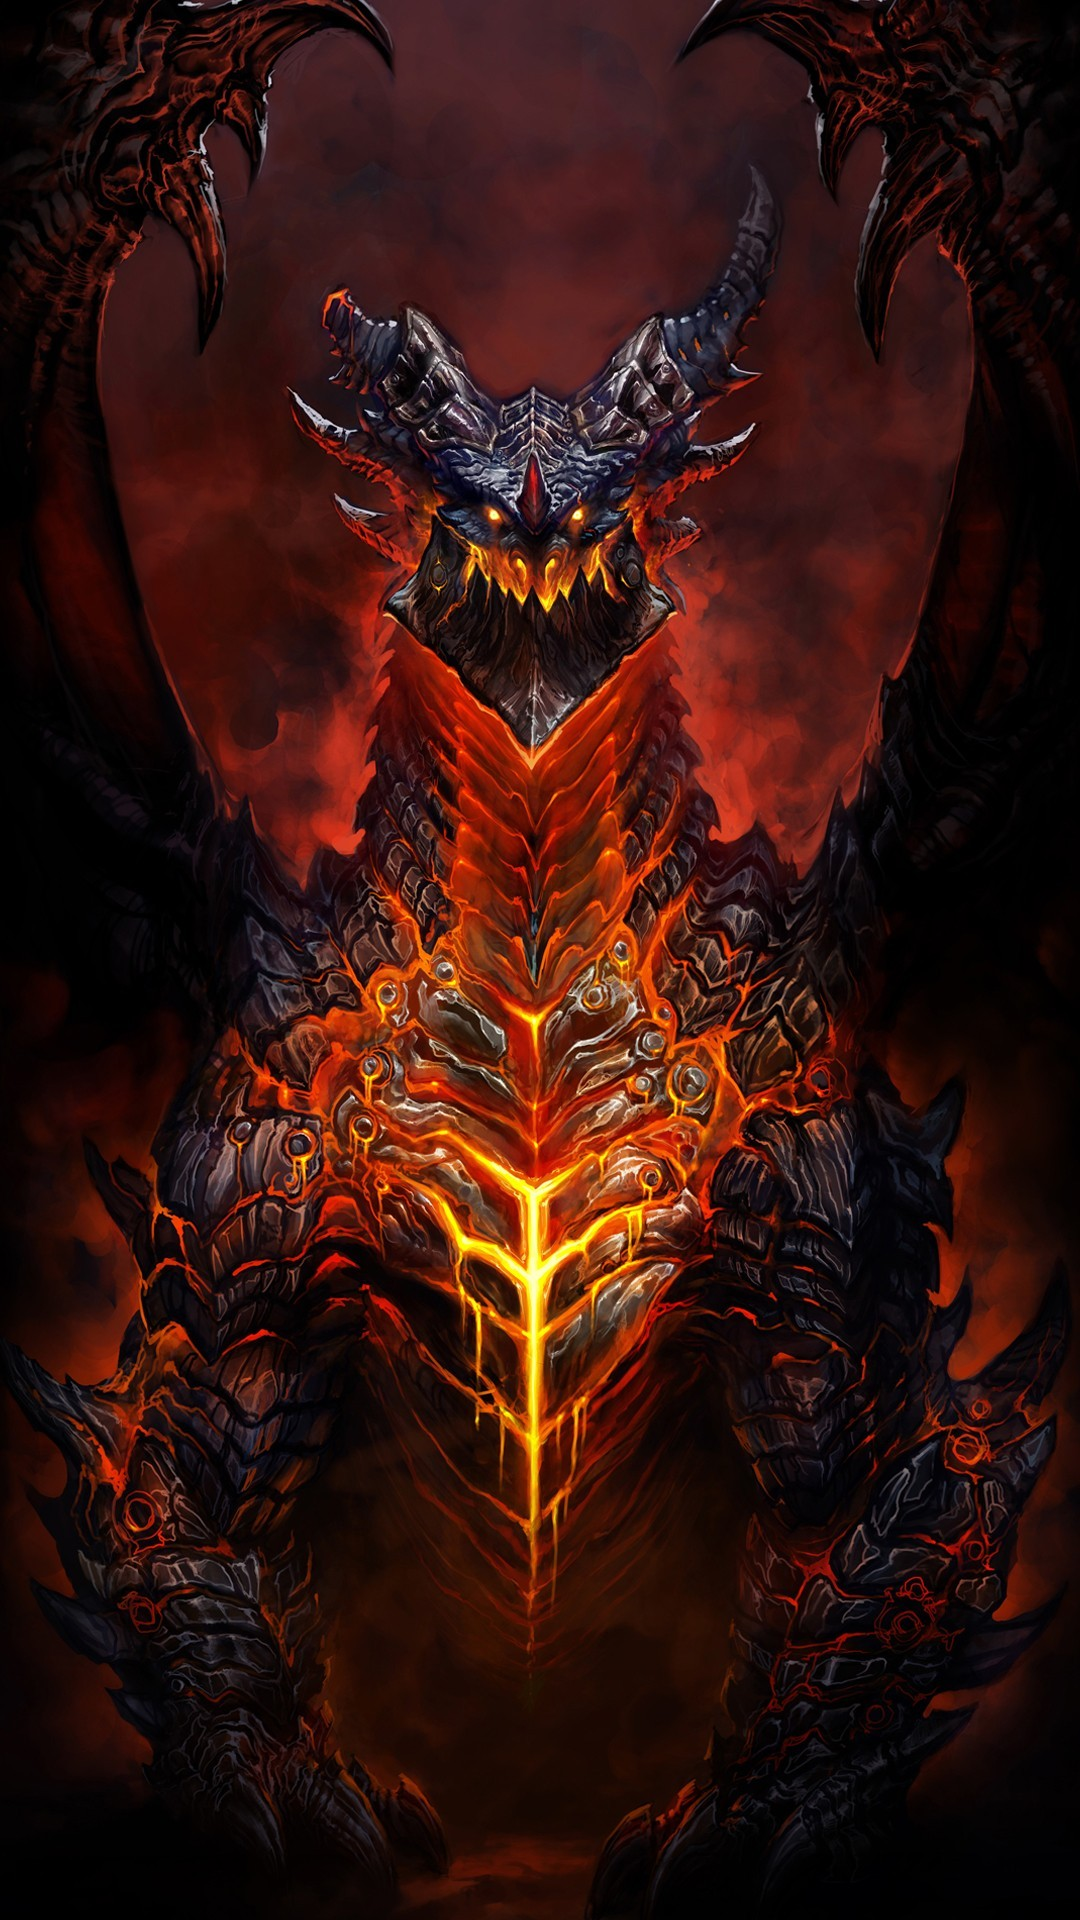 Deathwing-world-warcraft-htc-one-1080x1920-wallpaper-wp3604728